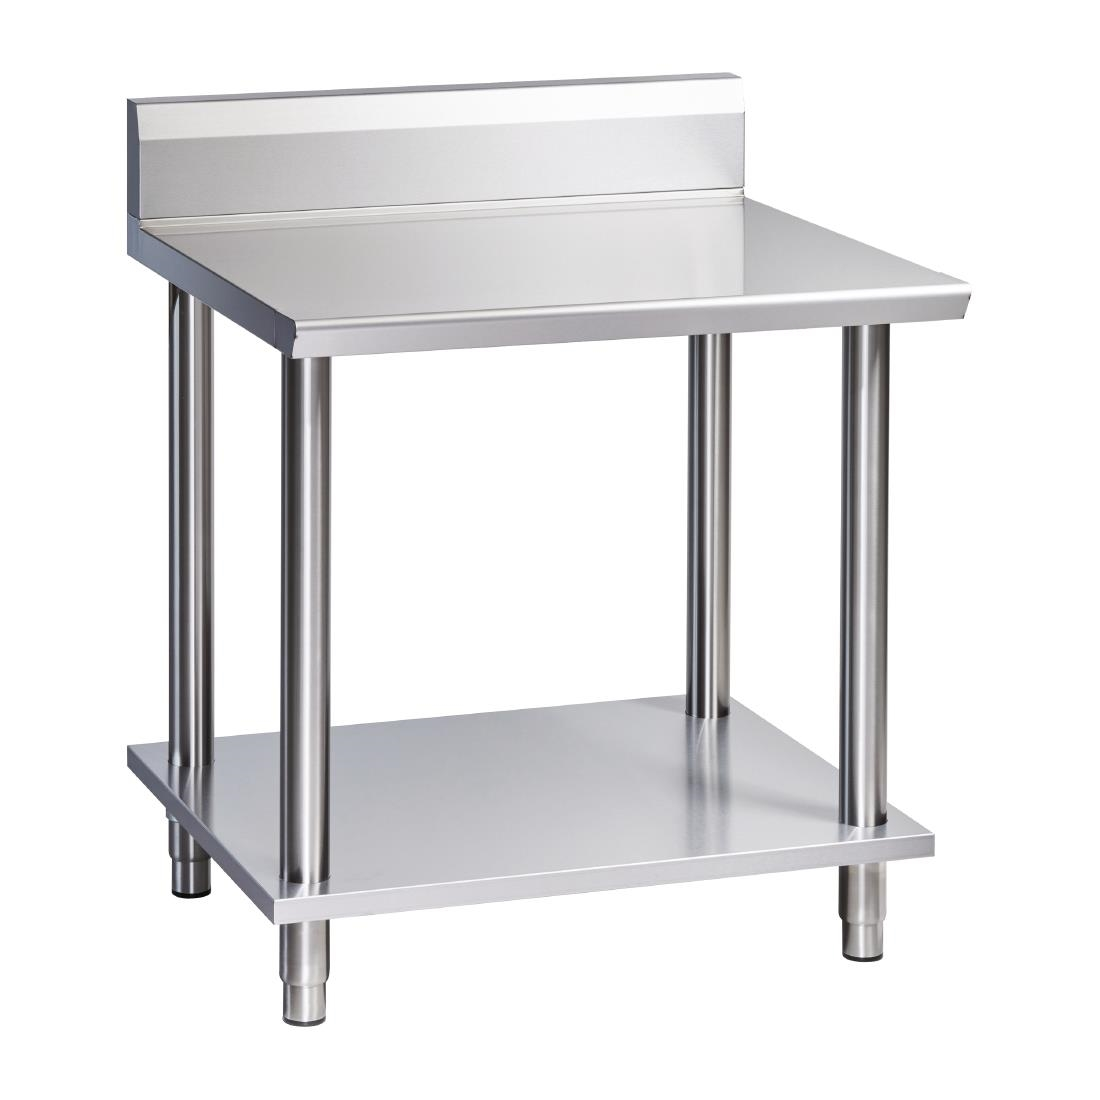 Image of Cobra Infill Table C900